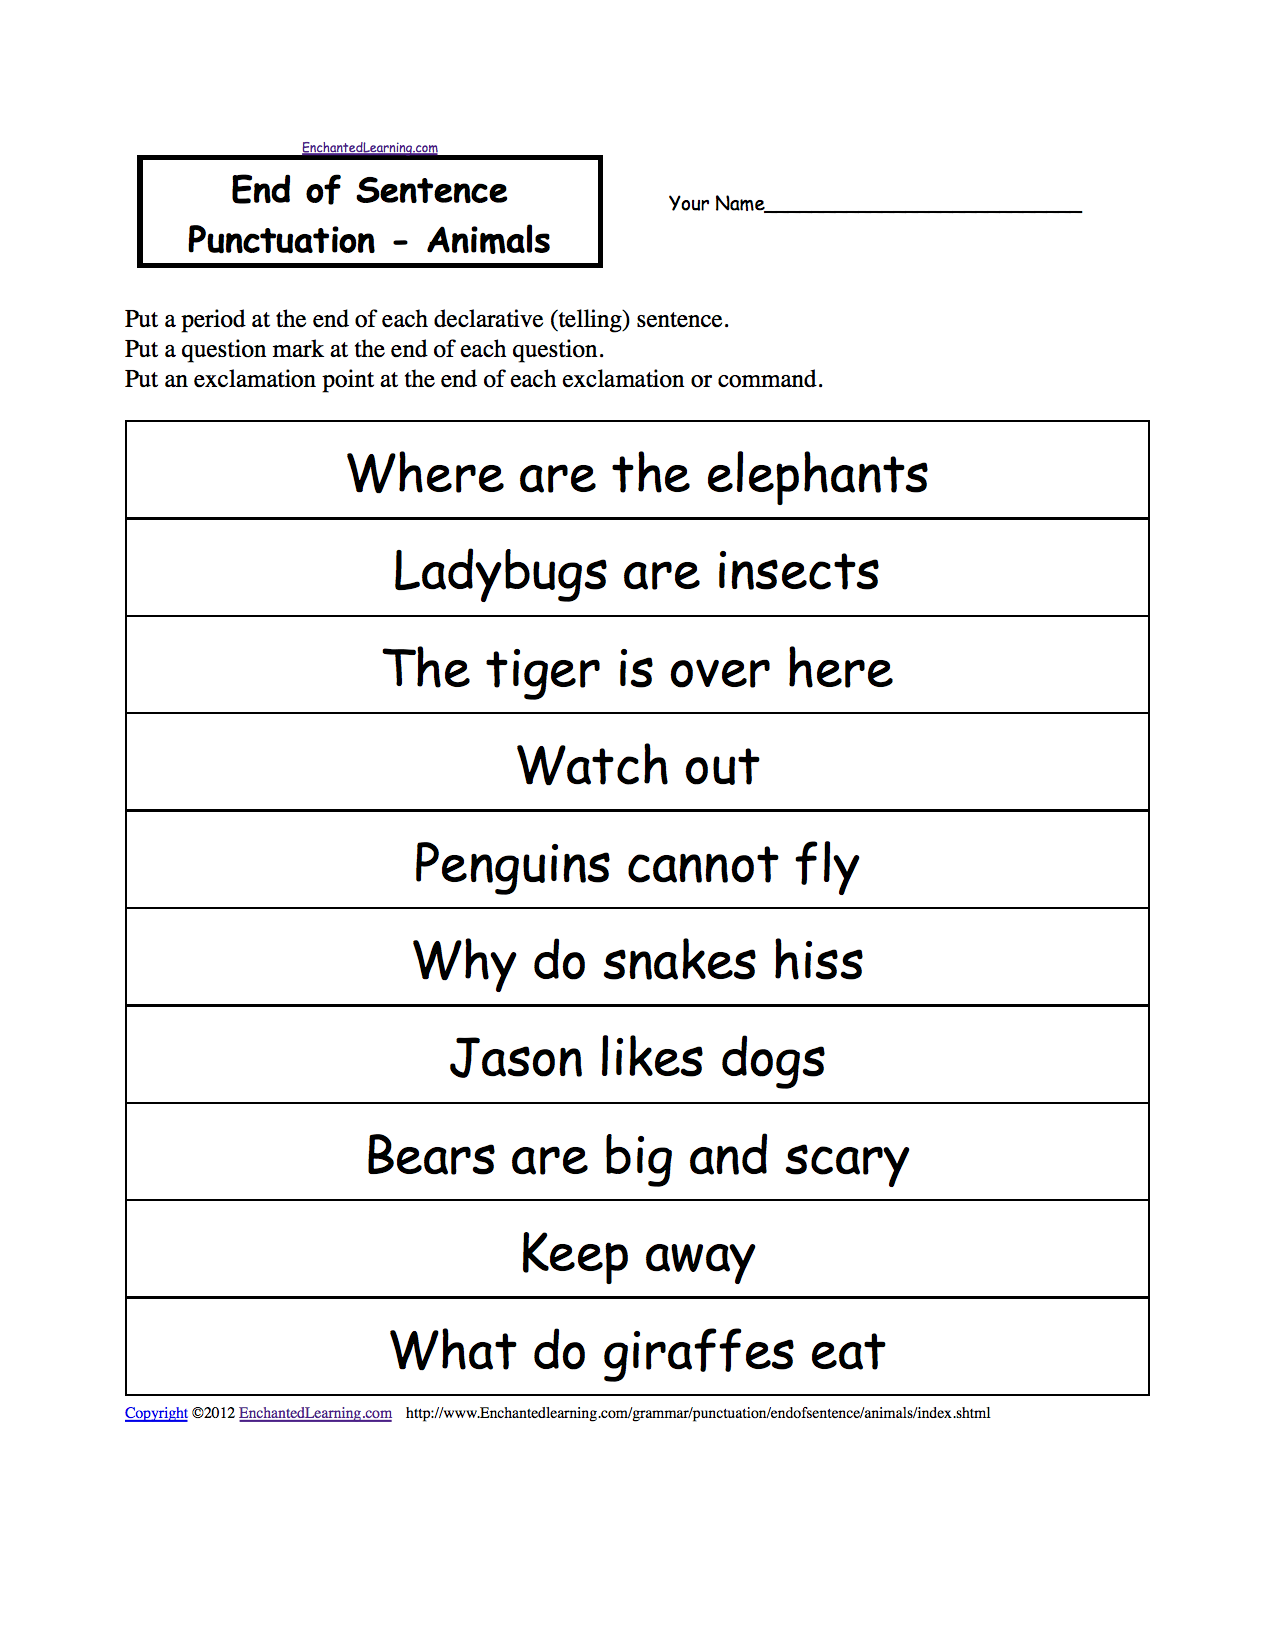 worksheet Punctuation Marks Worksheets end of sentence punctuation printable worksheets animals